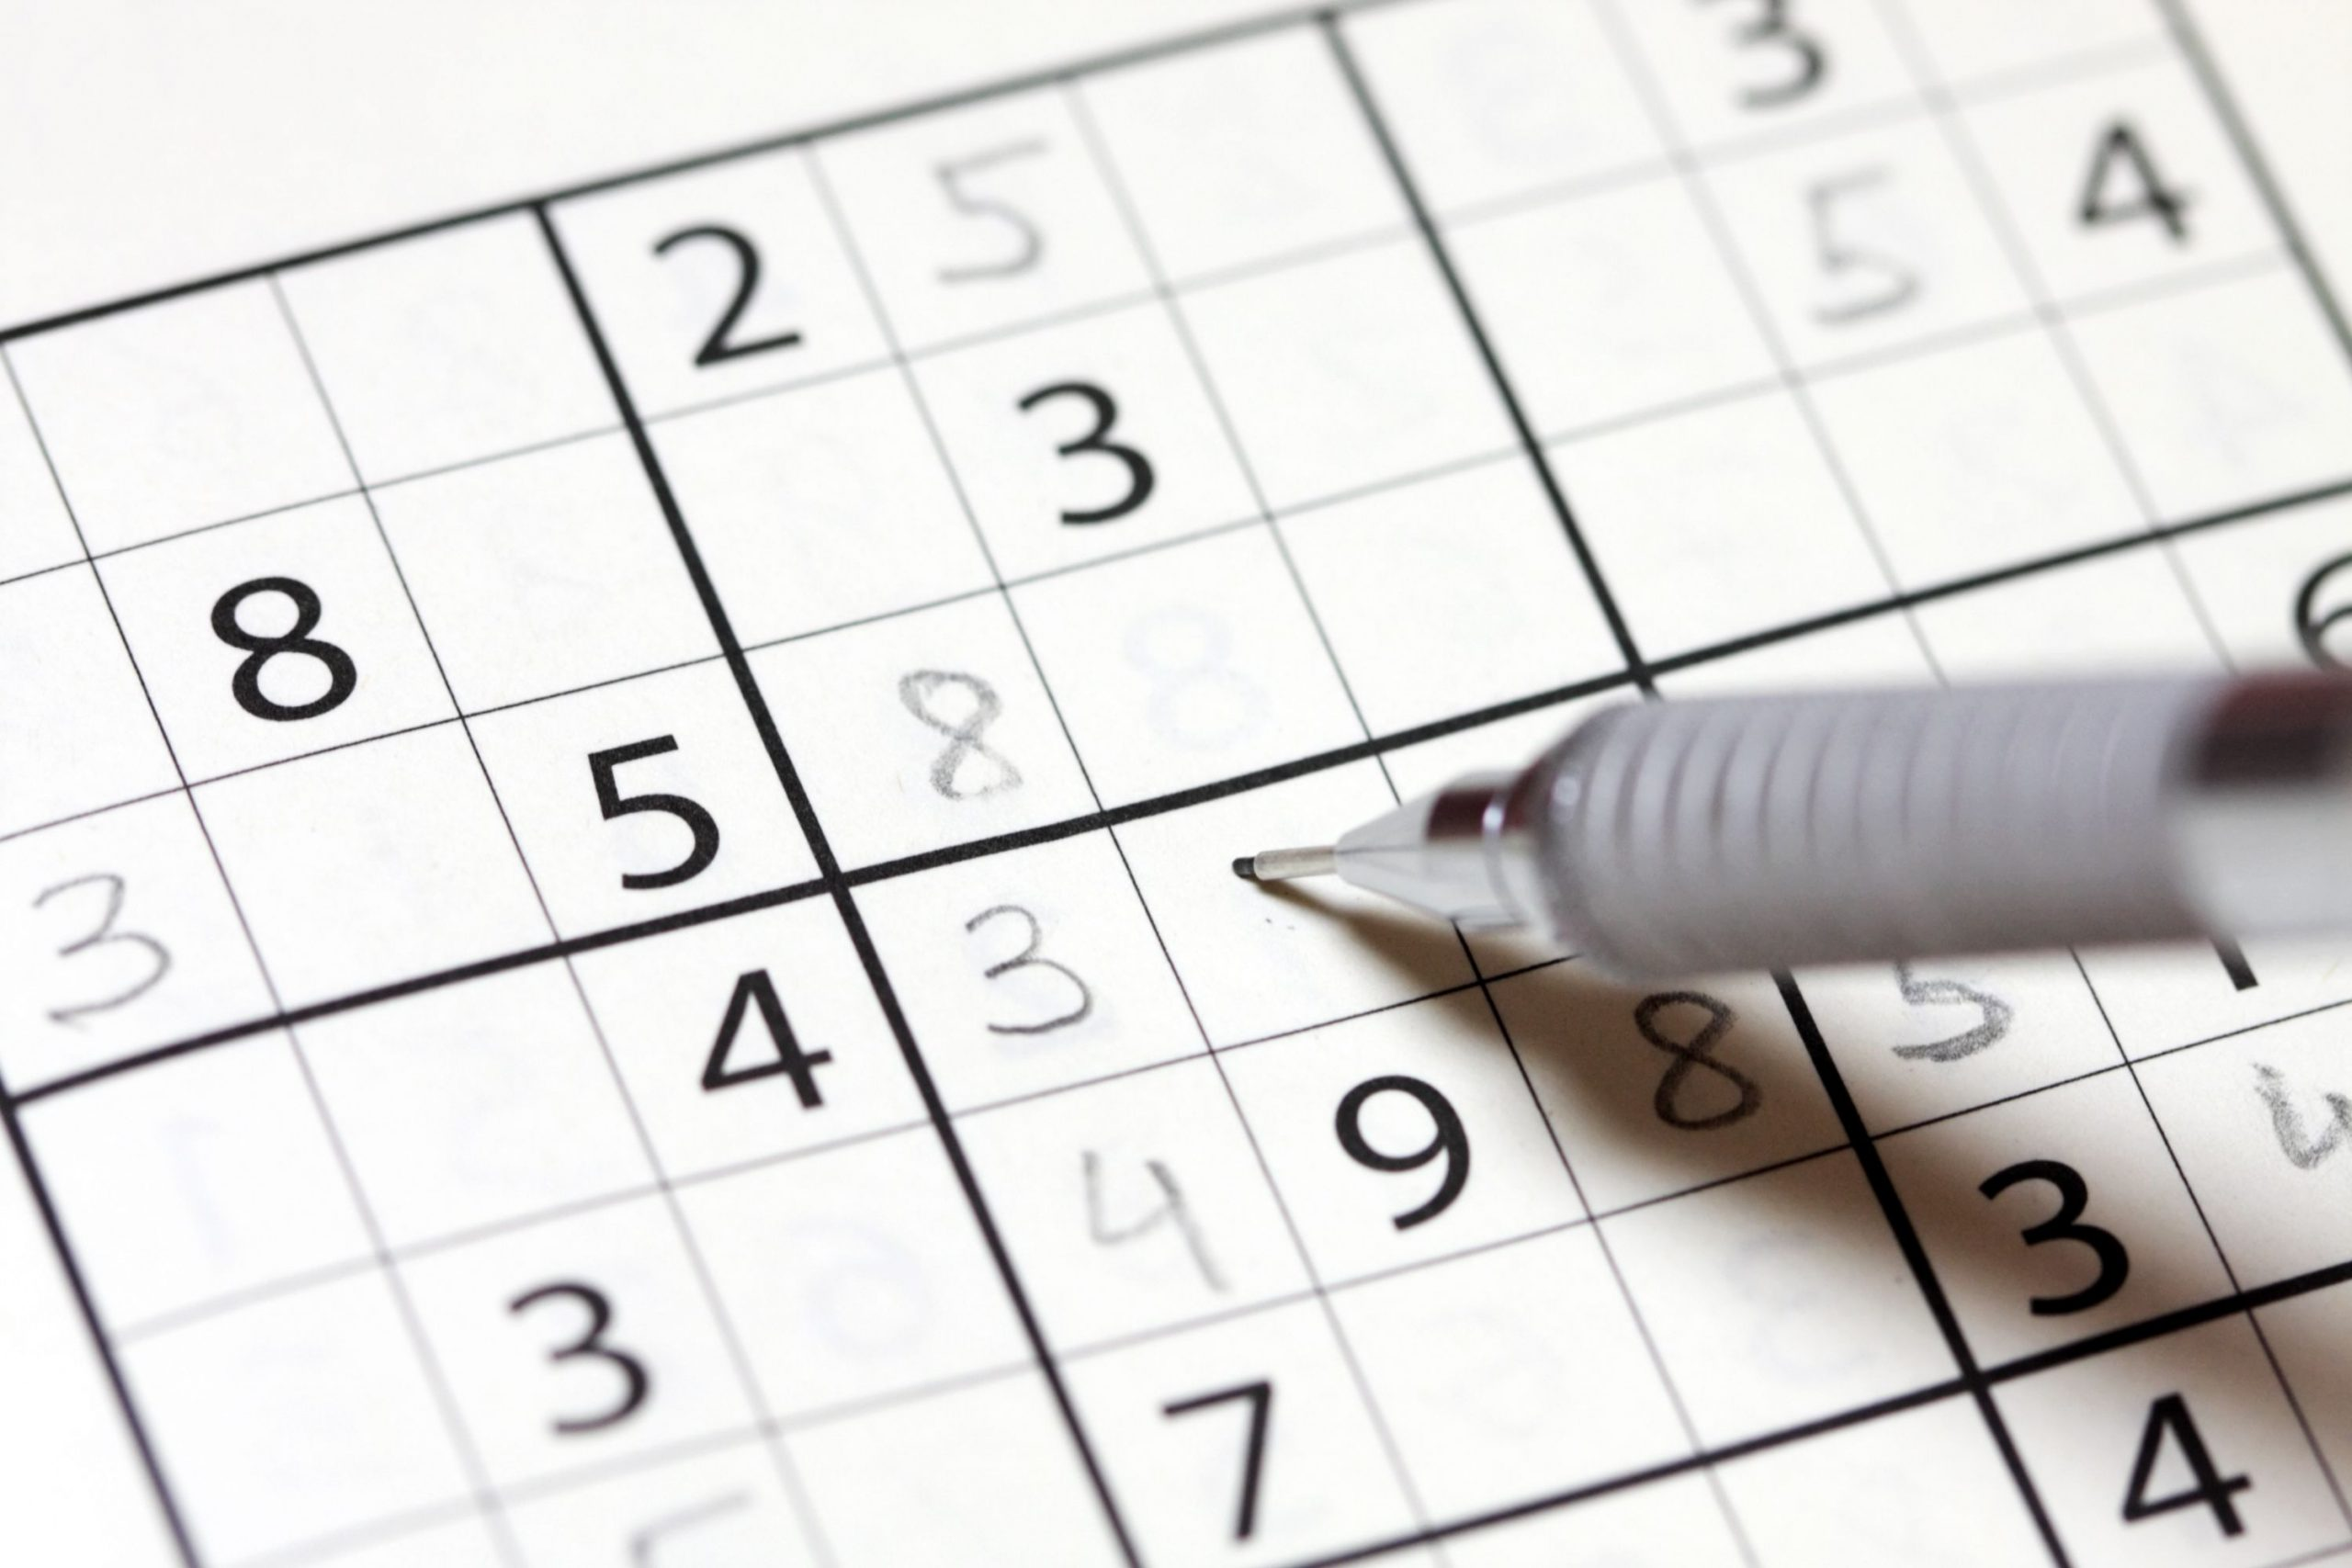 Where To Find Free Sudoku Printable Puzzles